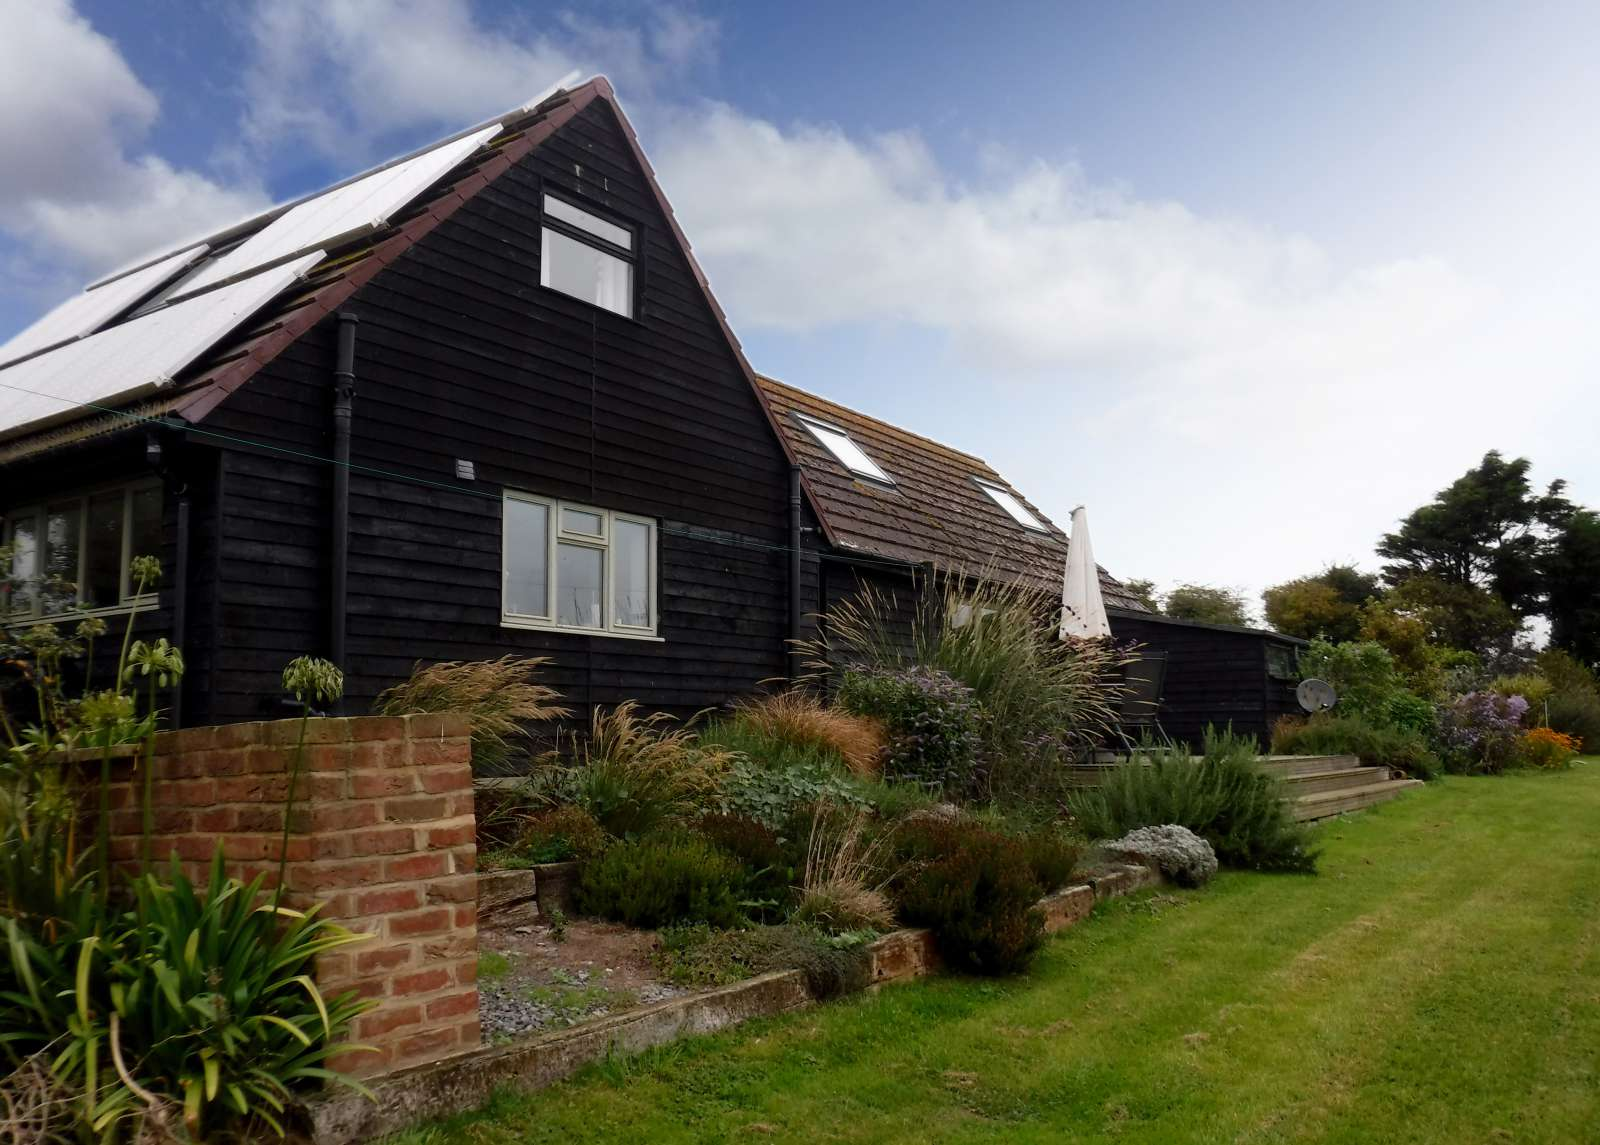 Holiday rental Cottage in Shorwell - The Little Barns East Facing Deck with BBQ, patio furniture and great views